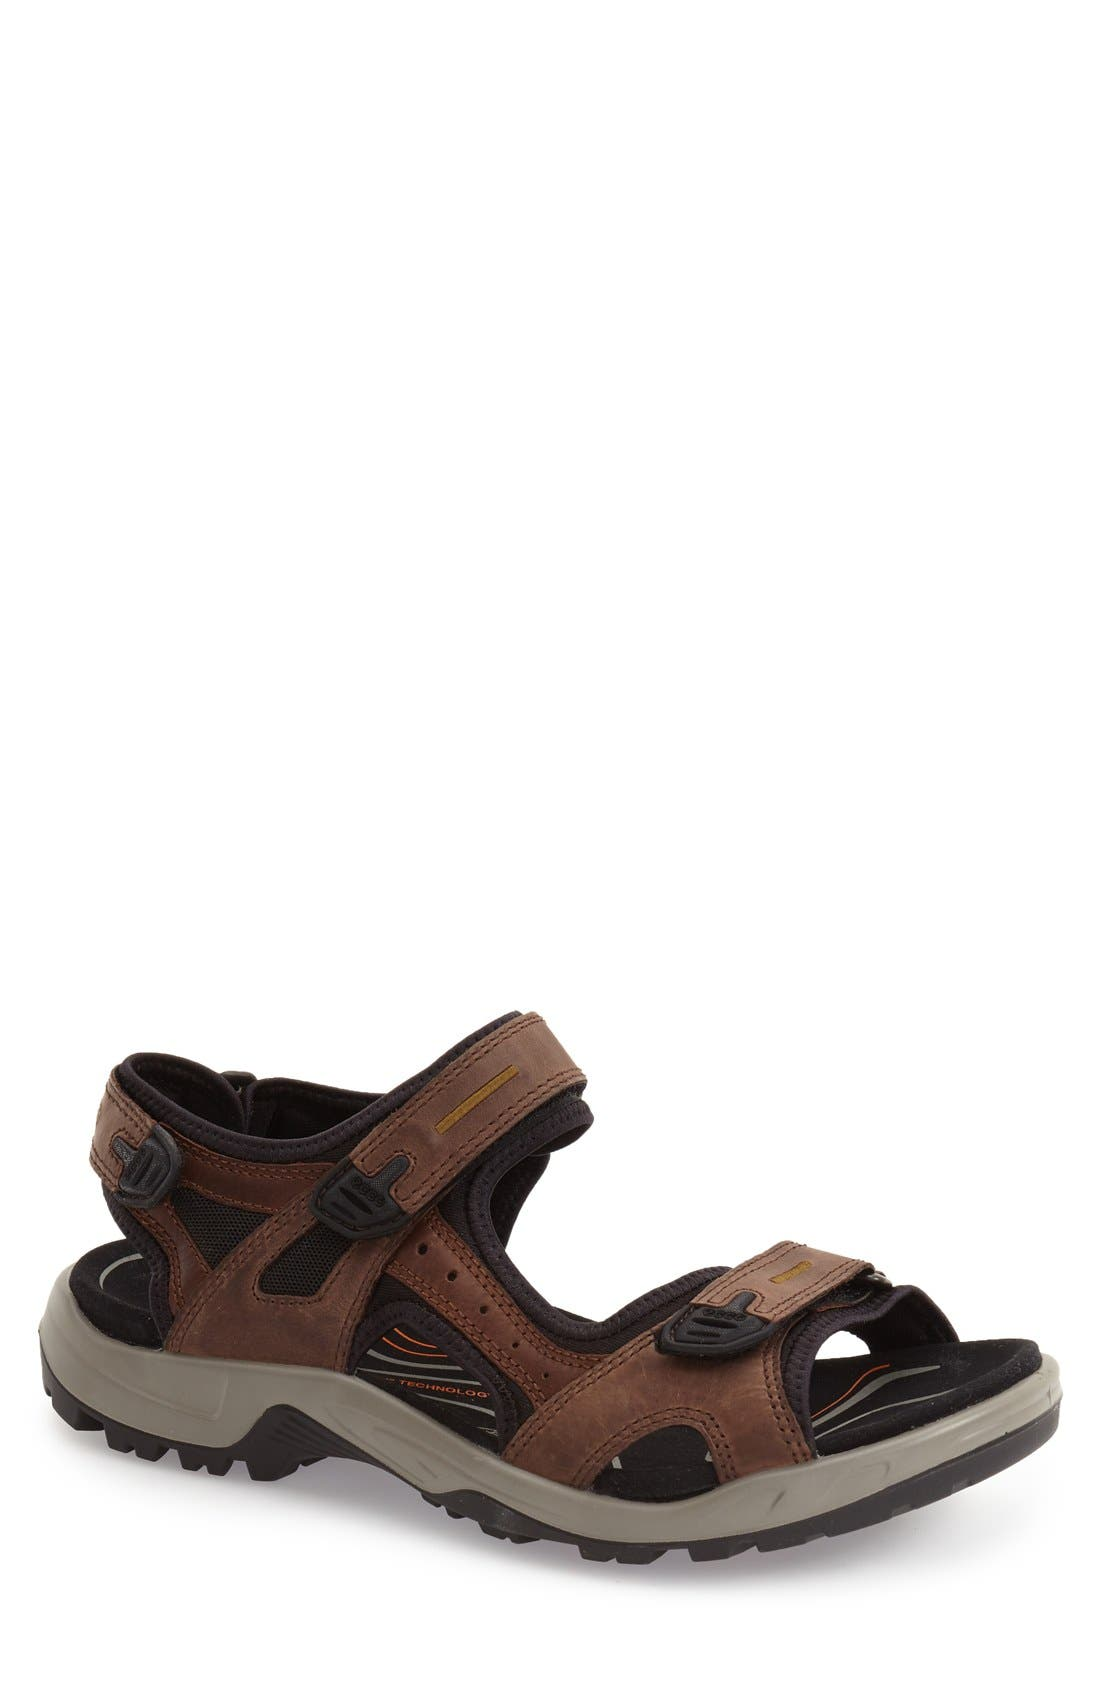 'Yucatan' Sandal,                         Main,                         color, Espresso Leather